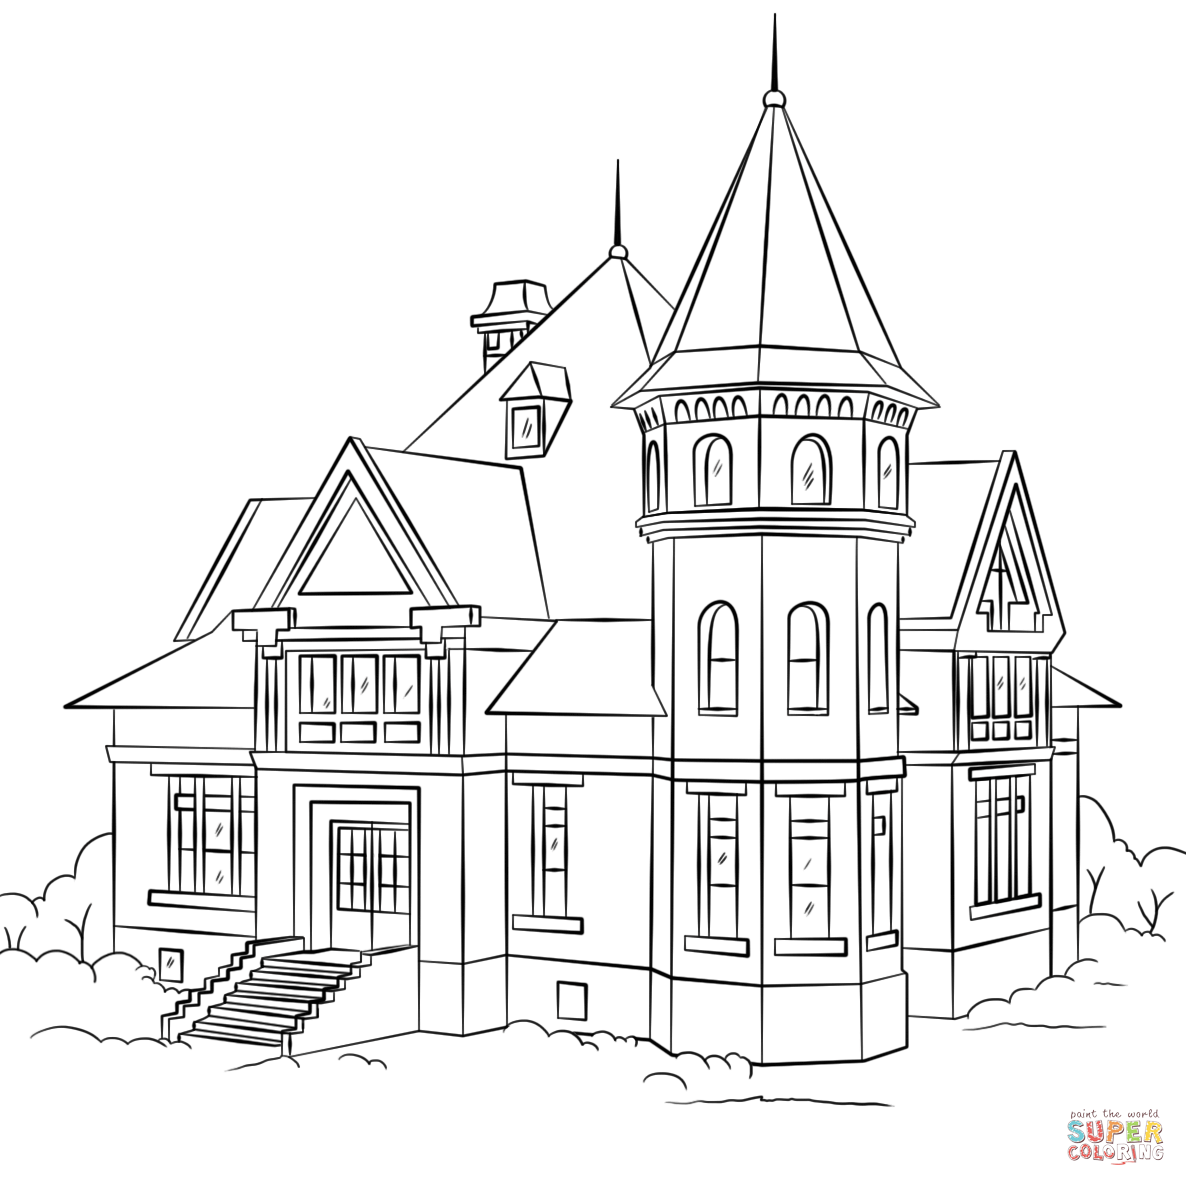 Download or print this amazing coloring page: Victorian